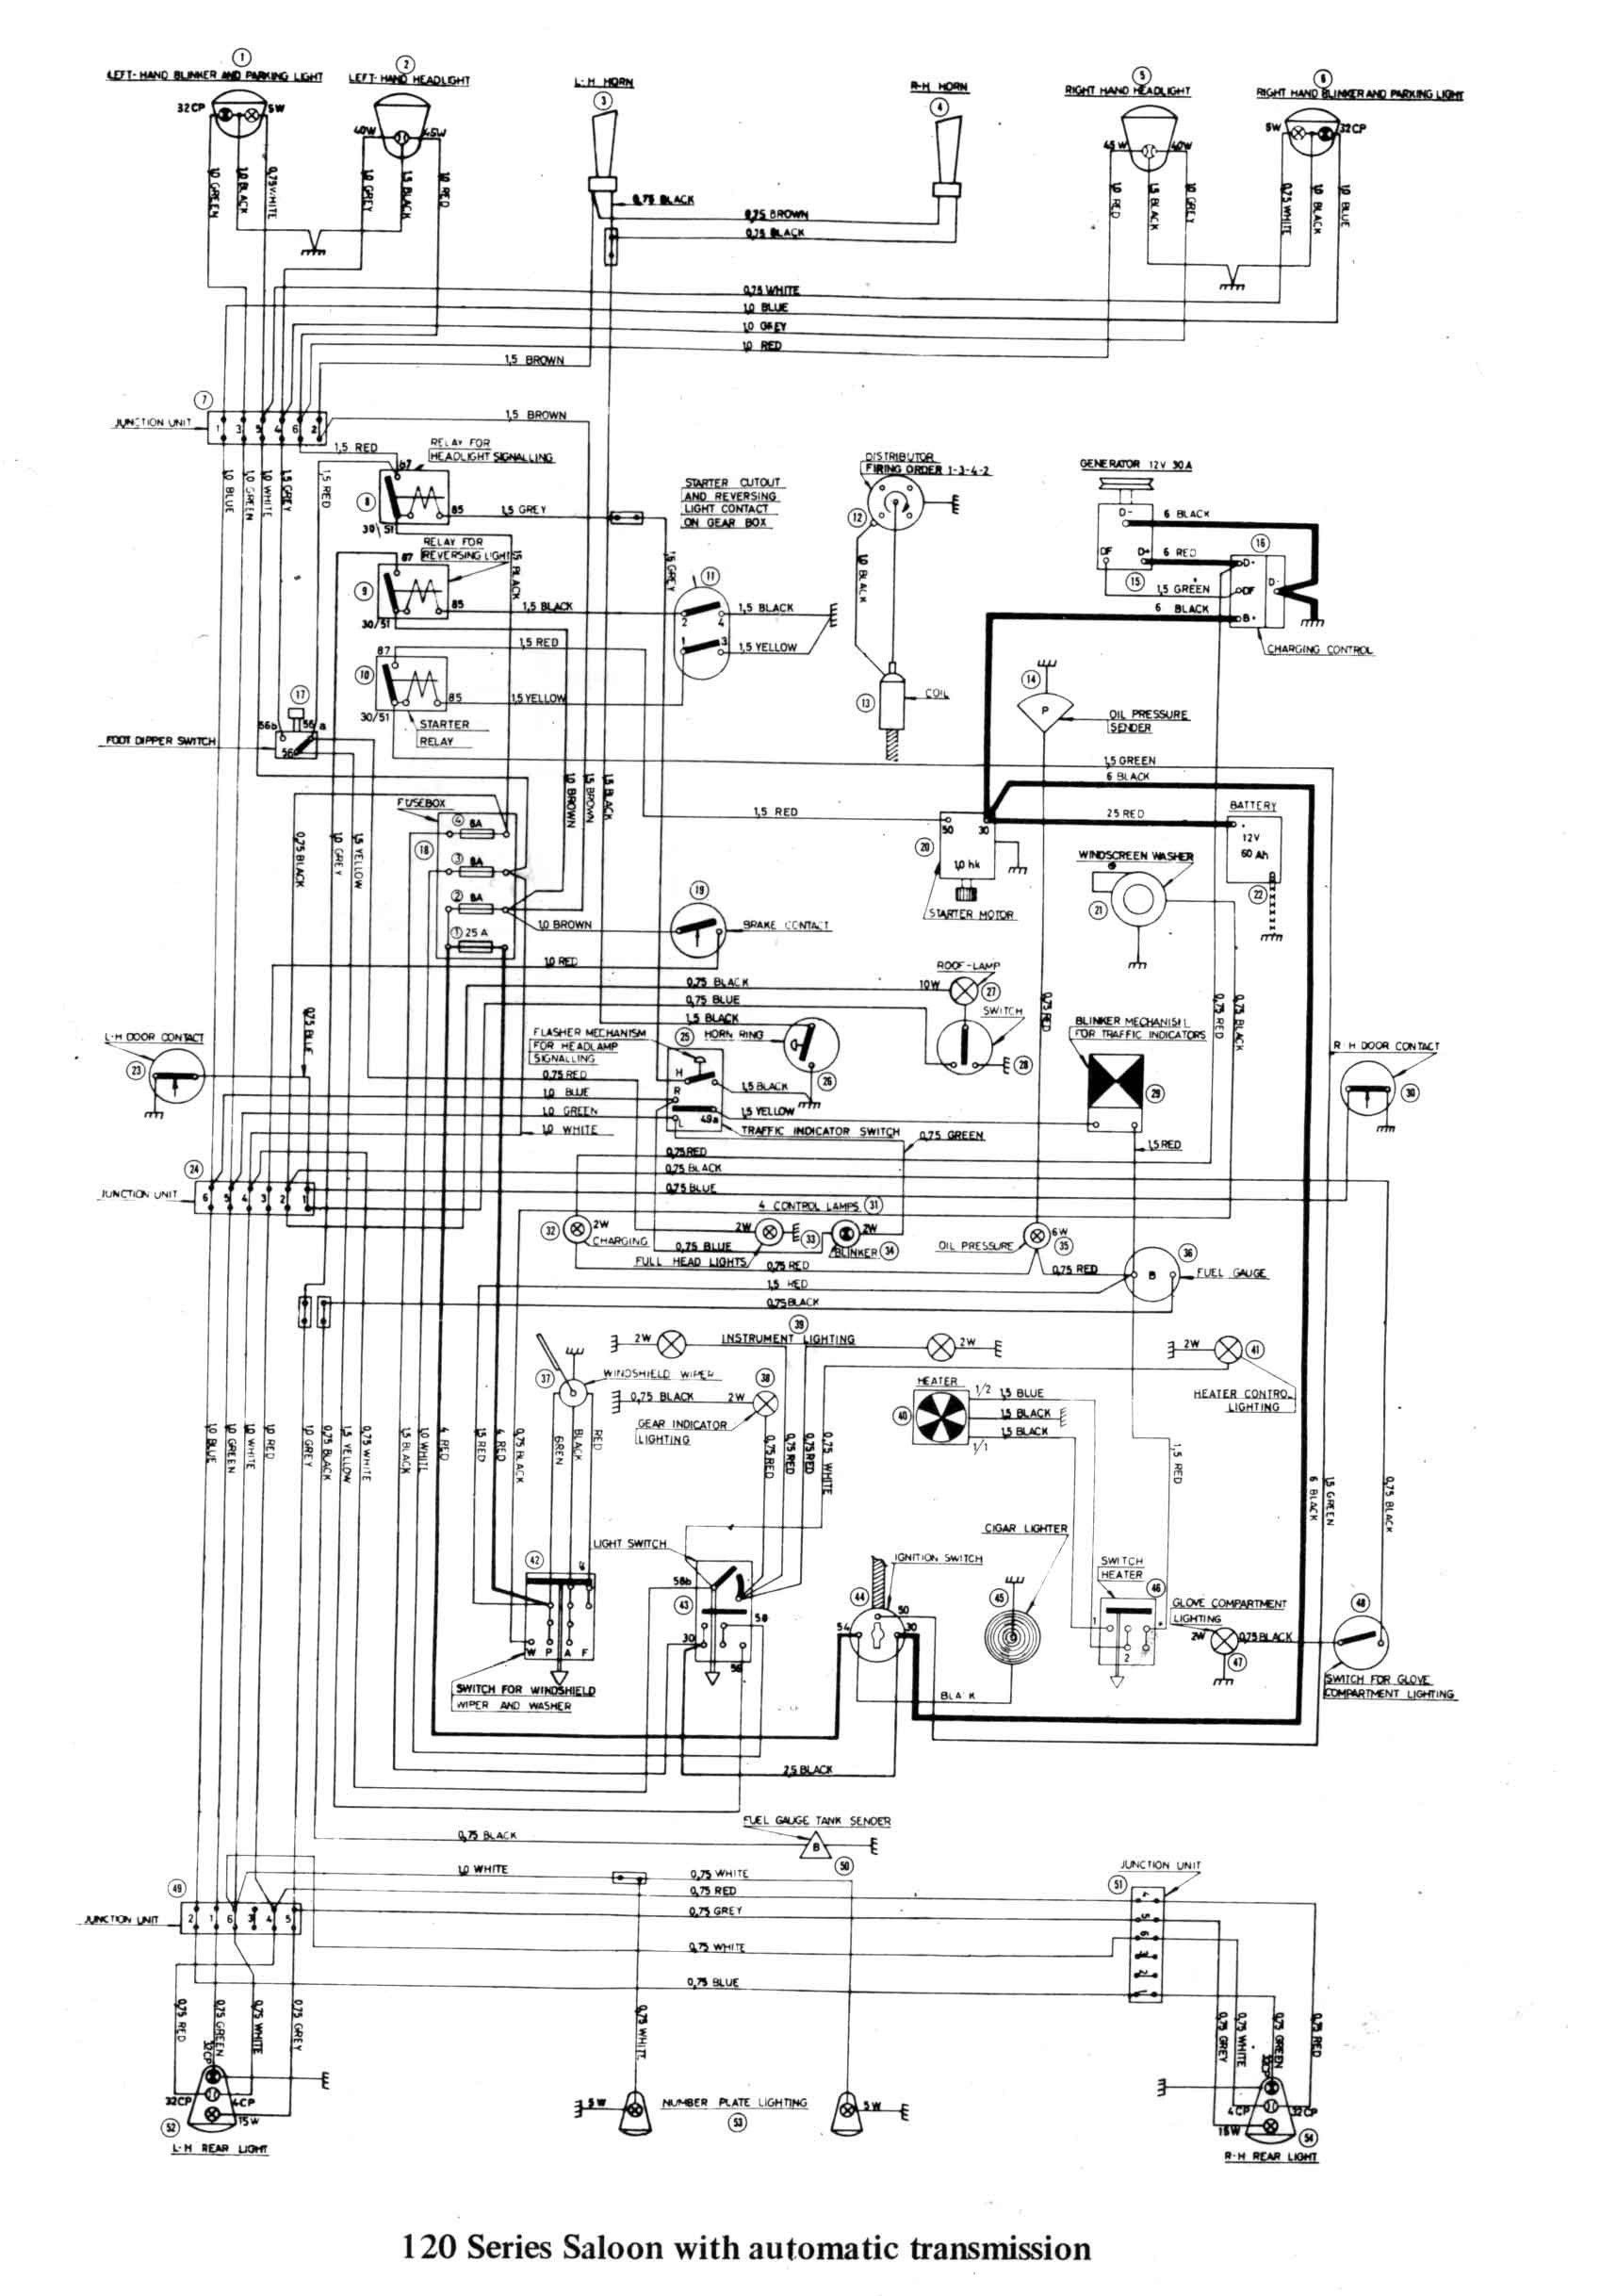 new 2004 dodge ram 1500 ignition wiring diagram #diagram #diagramsample  #diagramtemplate #wiringdiagram #diagr… | electrical wiring diagram, diagram  design, diagram  pinterest